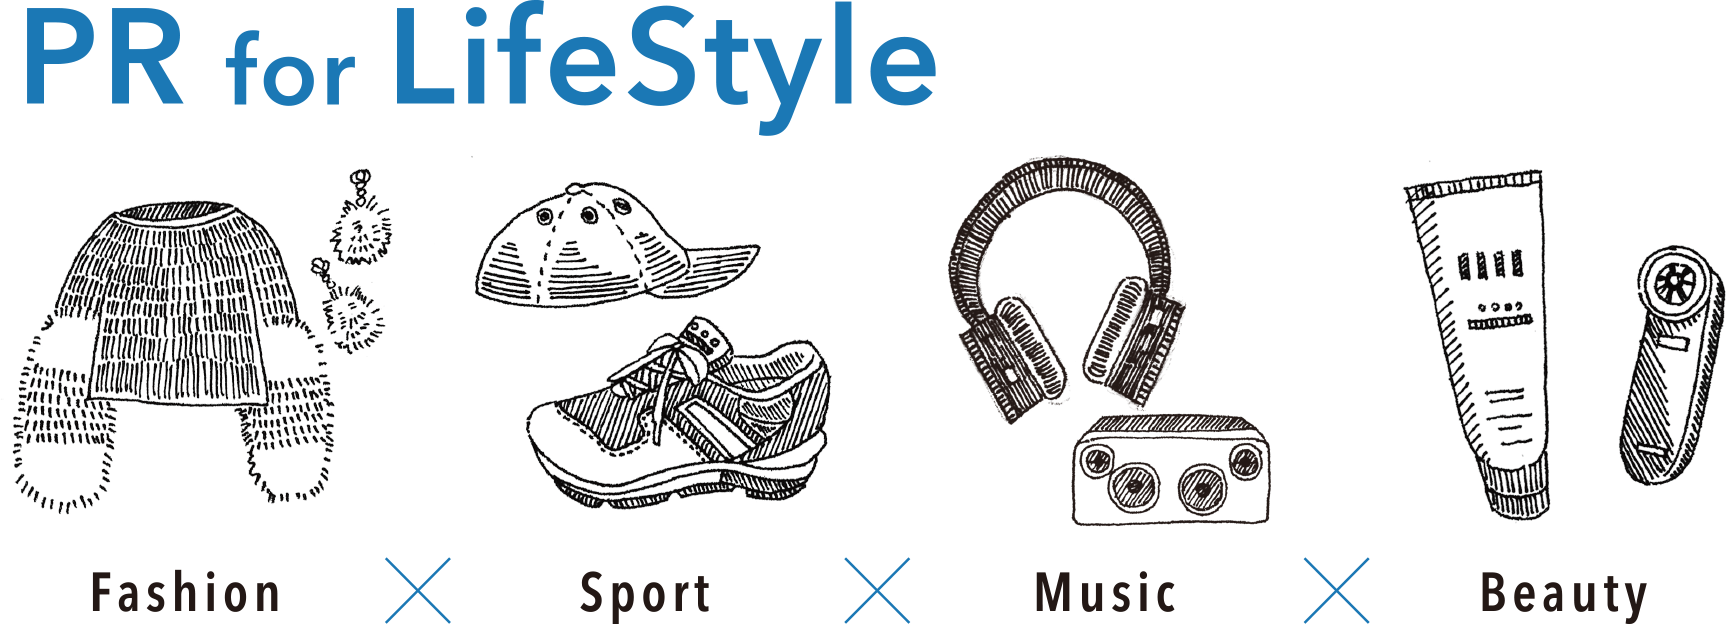 PR for Lifestyle - Fashion × Sport × Music × Beauty